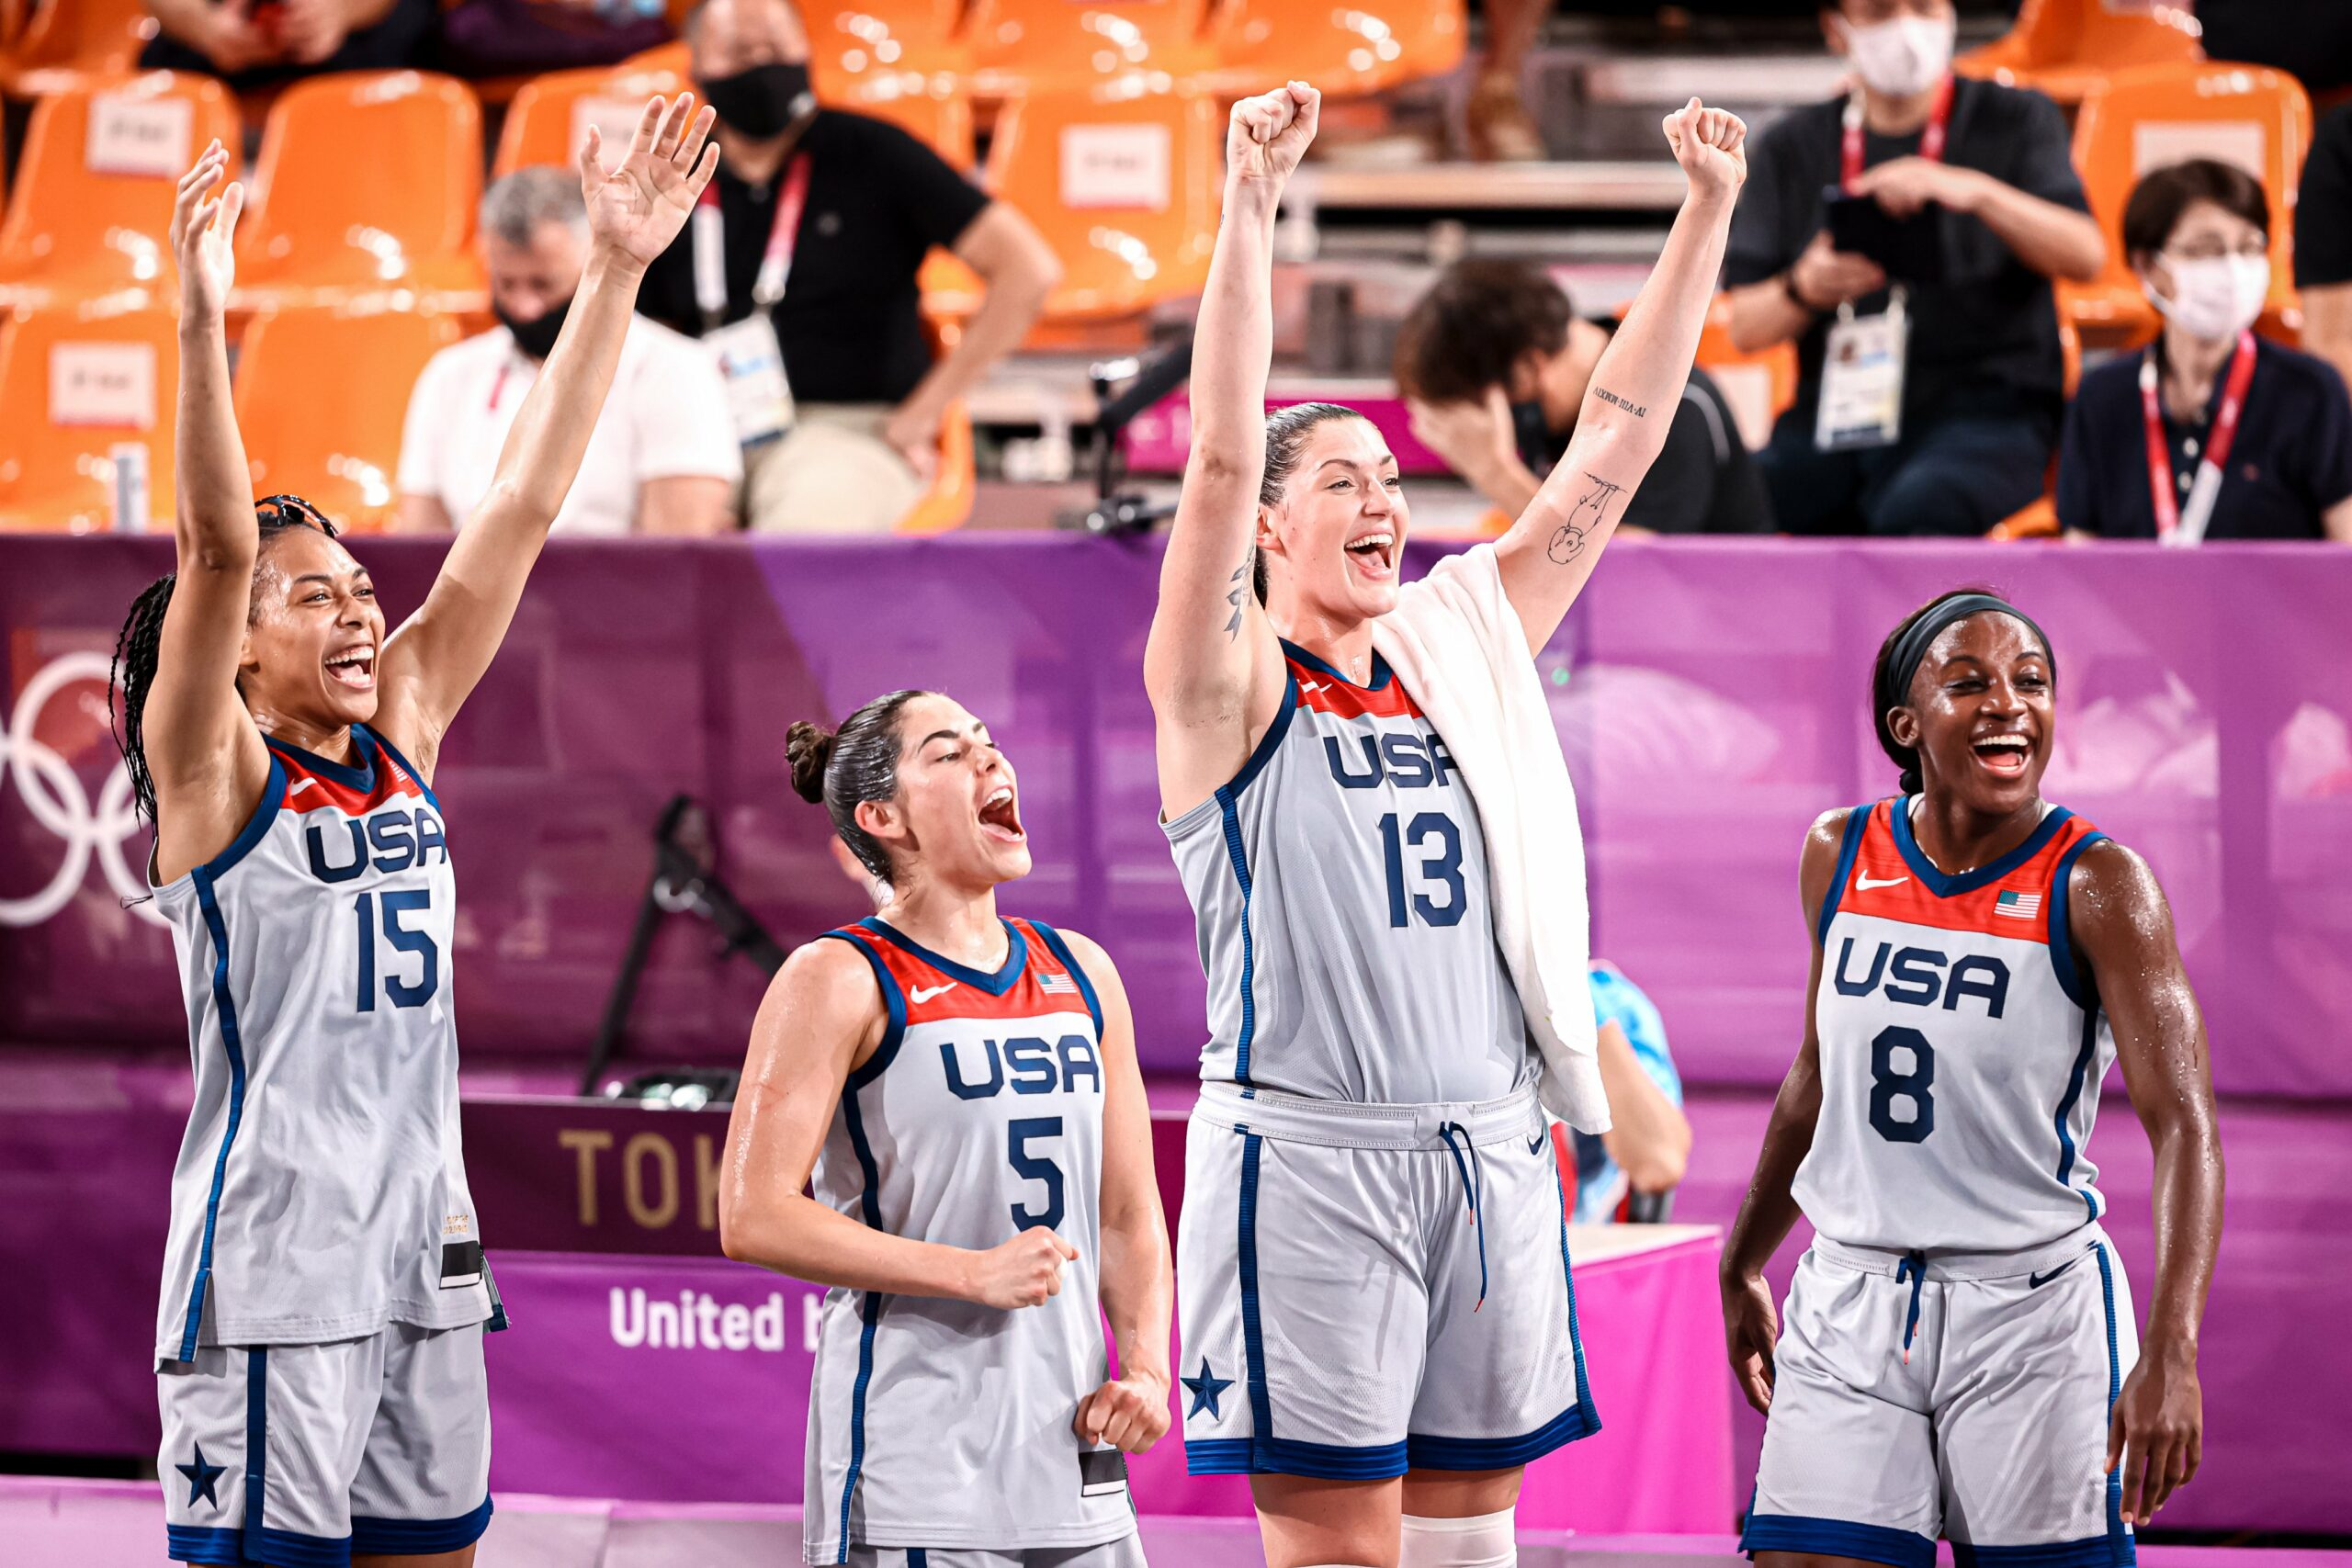 Former UNC Player Allisha Gray Wins Olympic Gold Medal in 3x3 Basketball